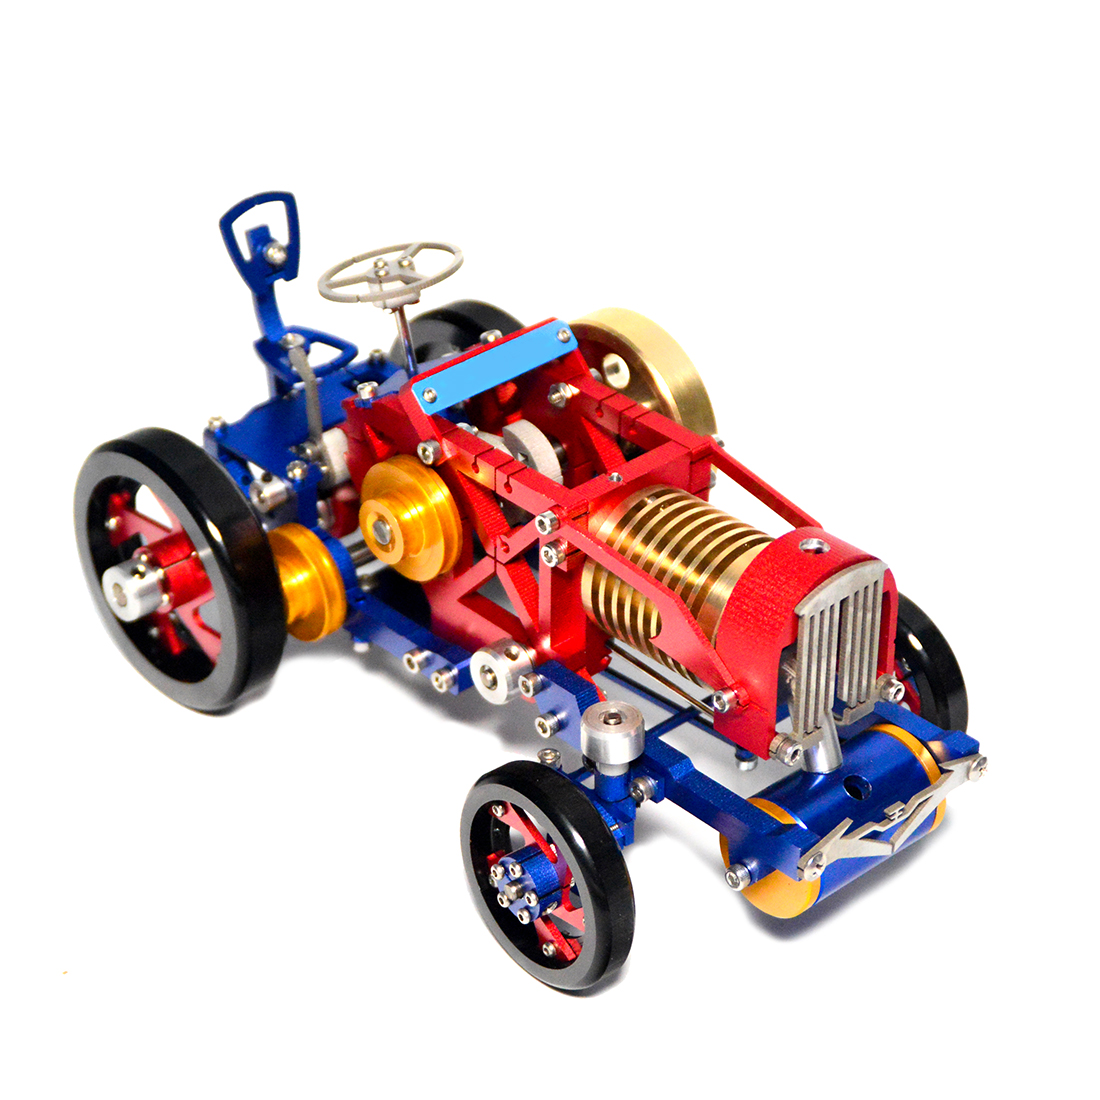 NFSTRIKE Vacuum Suction Fire Type Metal Stirling Engine Tractor Model  Christmas Gifts 2019 New Arrival